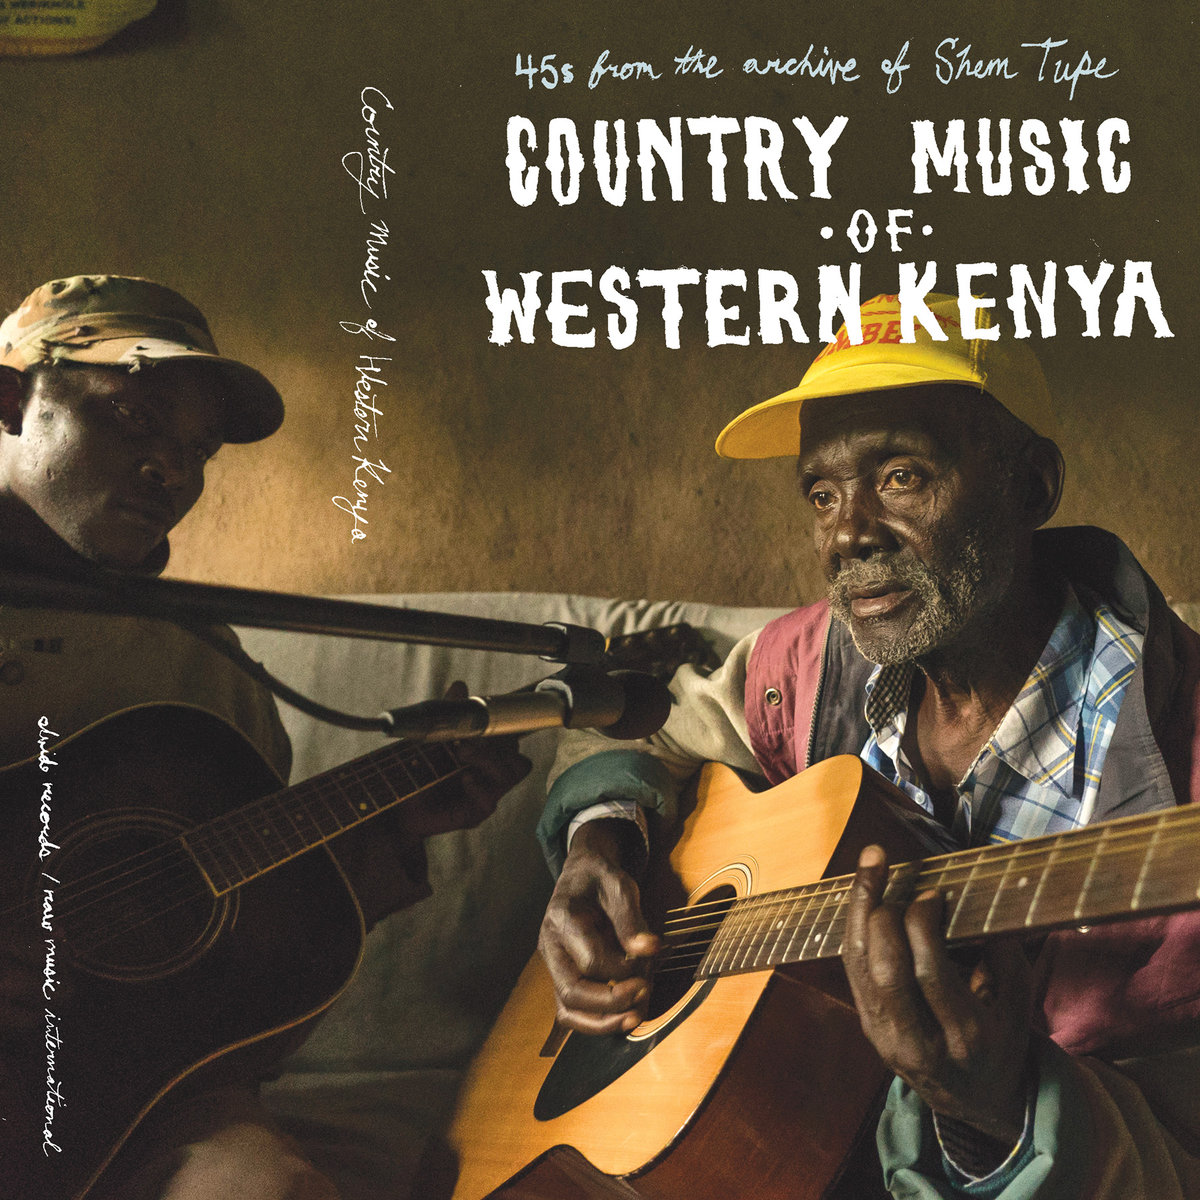 Various Artists - Country Music of Western Kenya: 45s from the archive of Shem Tupe  Release Date: February 19, 2017 Label: Olvido Records  SERVICE: Restoration, Mastering SOURCE MATERIAL: 45 rpm records NUMBER OF Cassettes: 1 GENRE: Kenyian FORMAT: Cassette,Digital